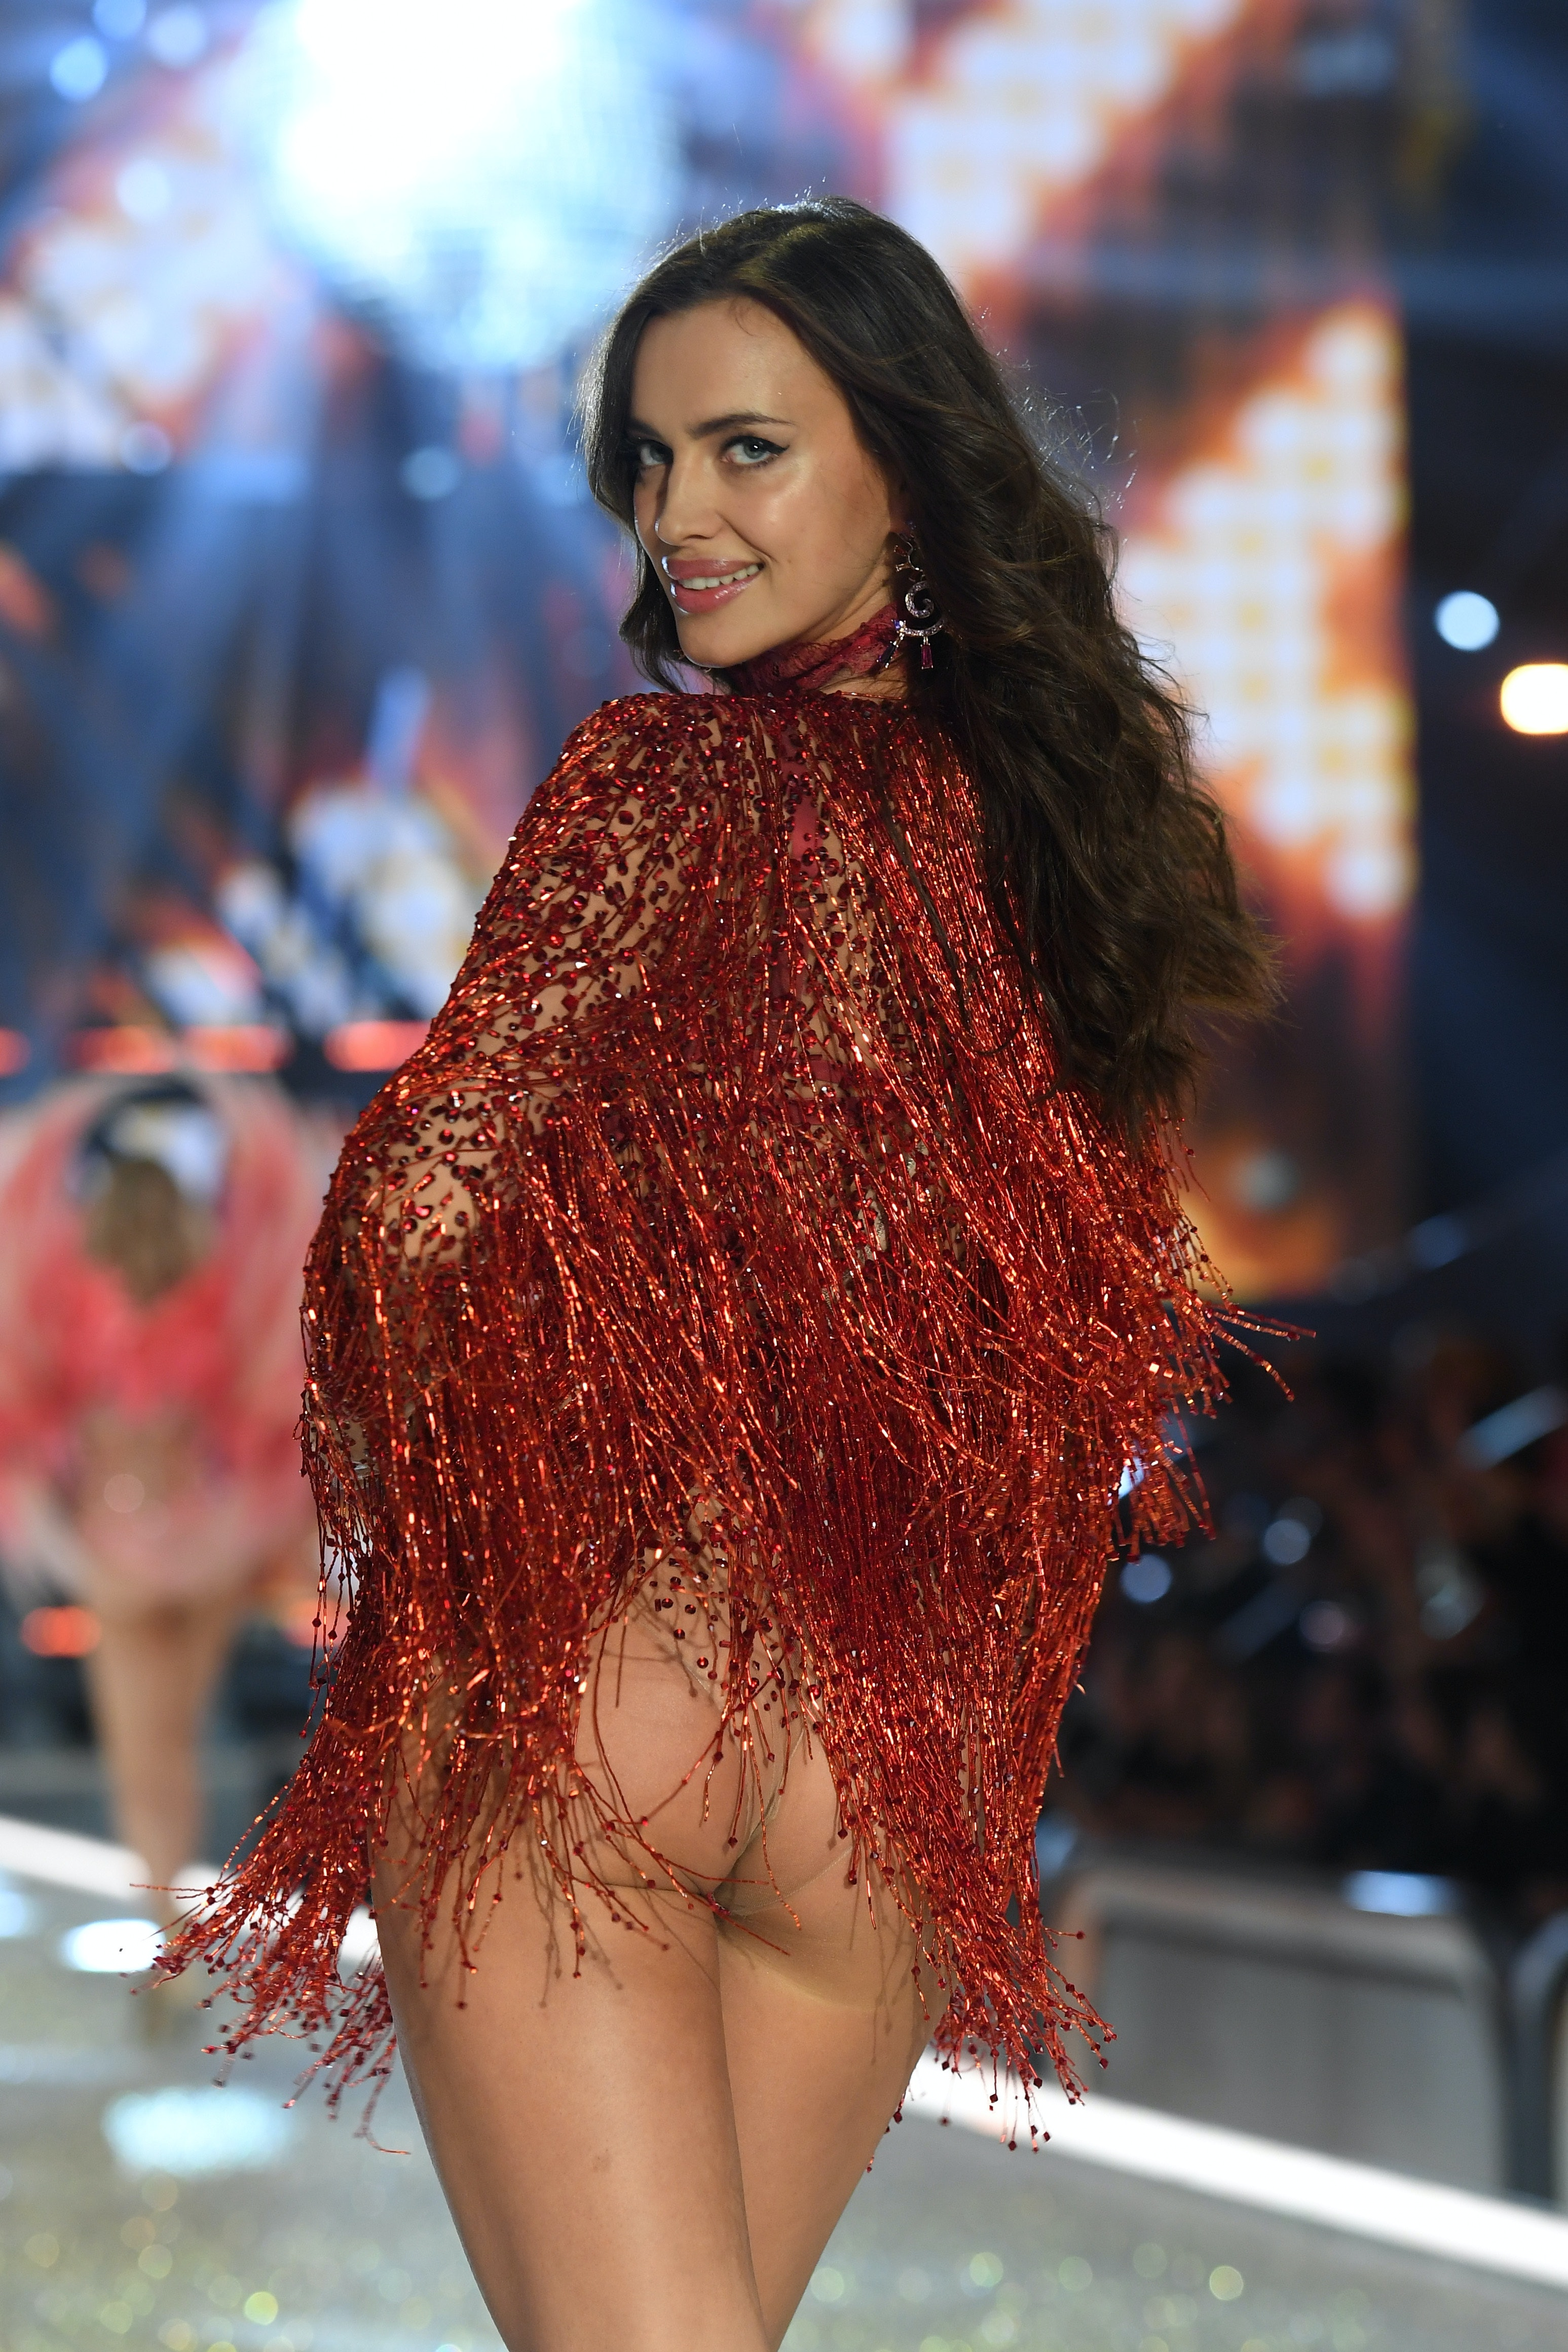 dfb3bfa86a7 Irina Shayk Makes Her 2016 Victoria s Secret Fashion Show Debut   Looks  Absolutely Stunning — PHOTOS